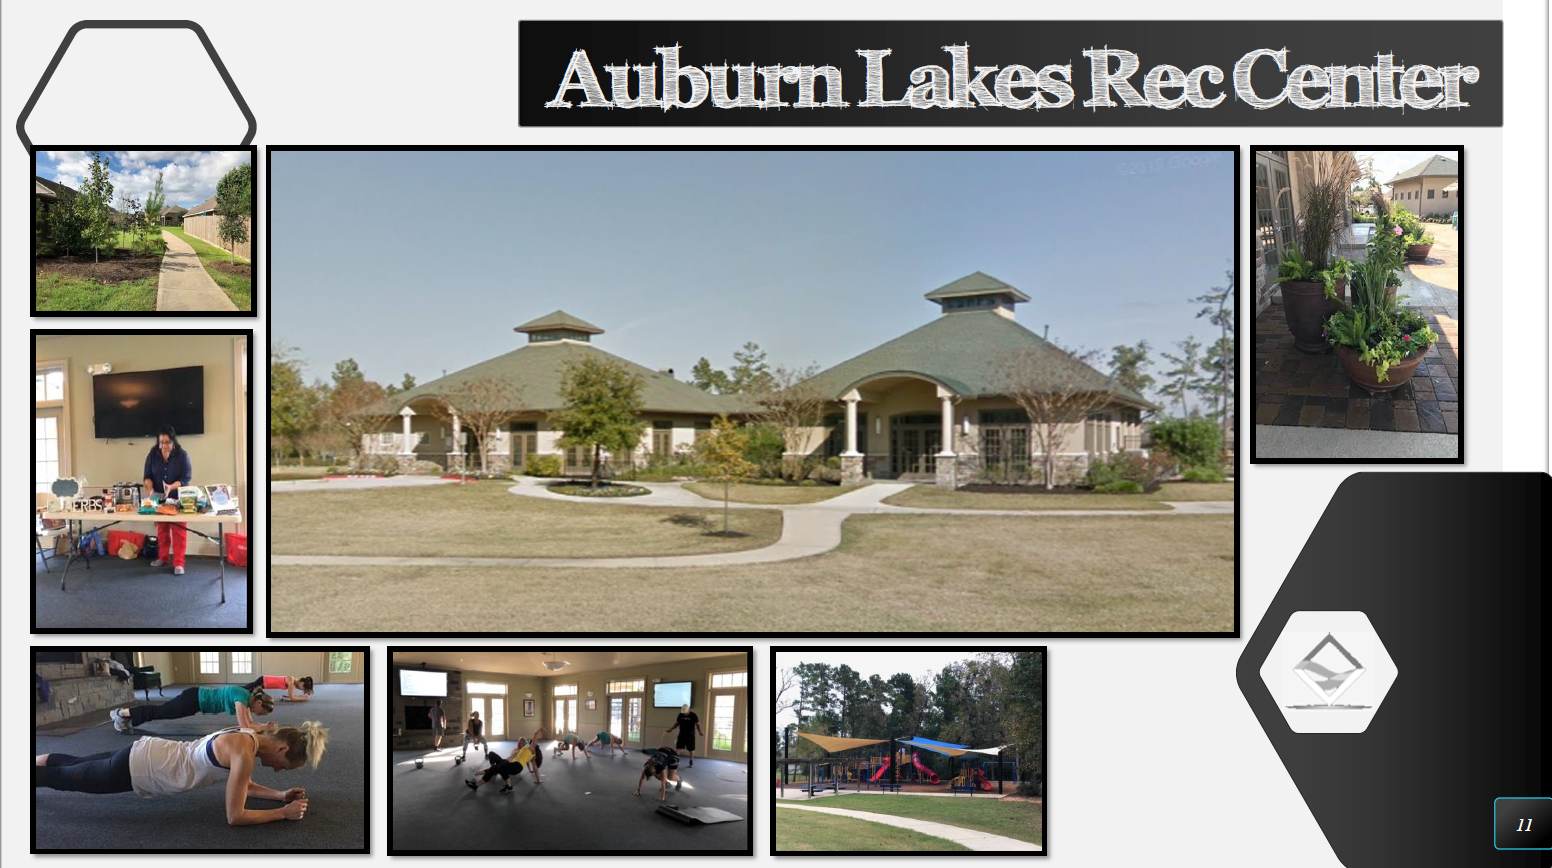 Auburn Lakes Rec Center